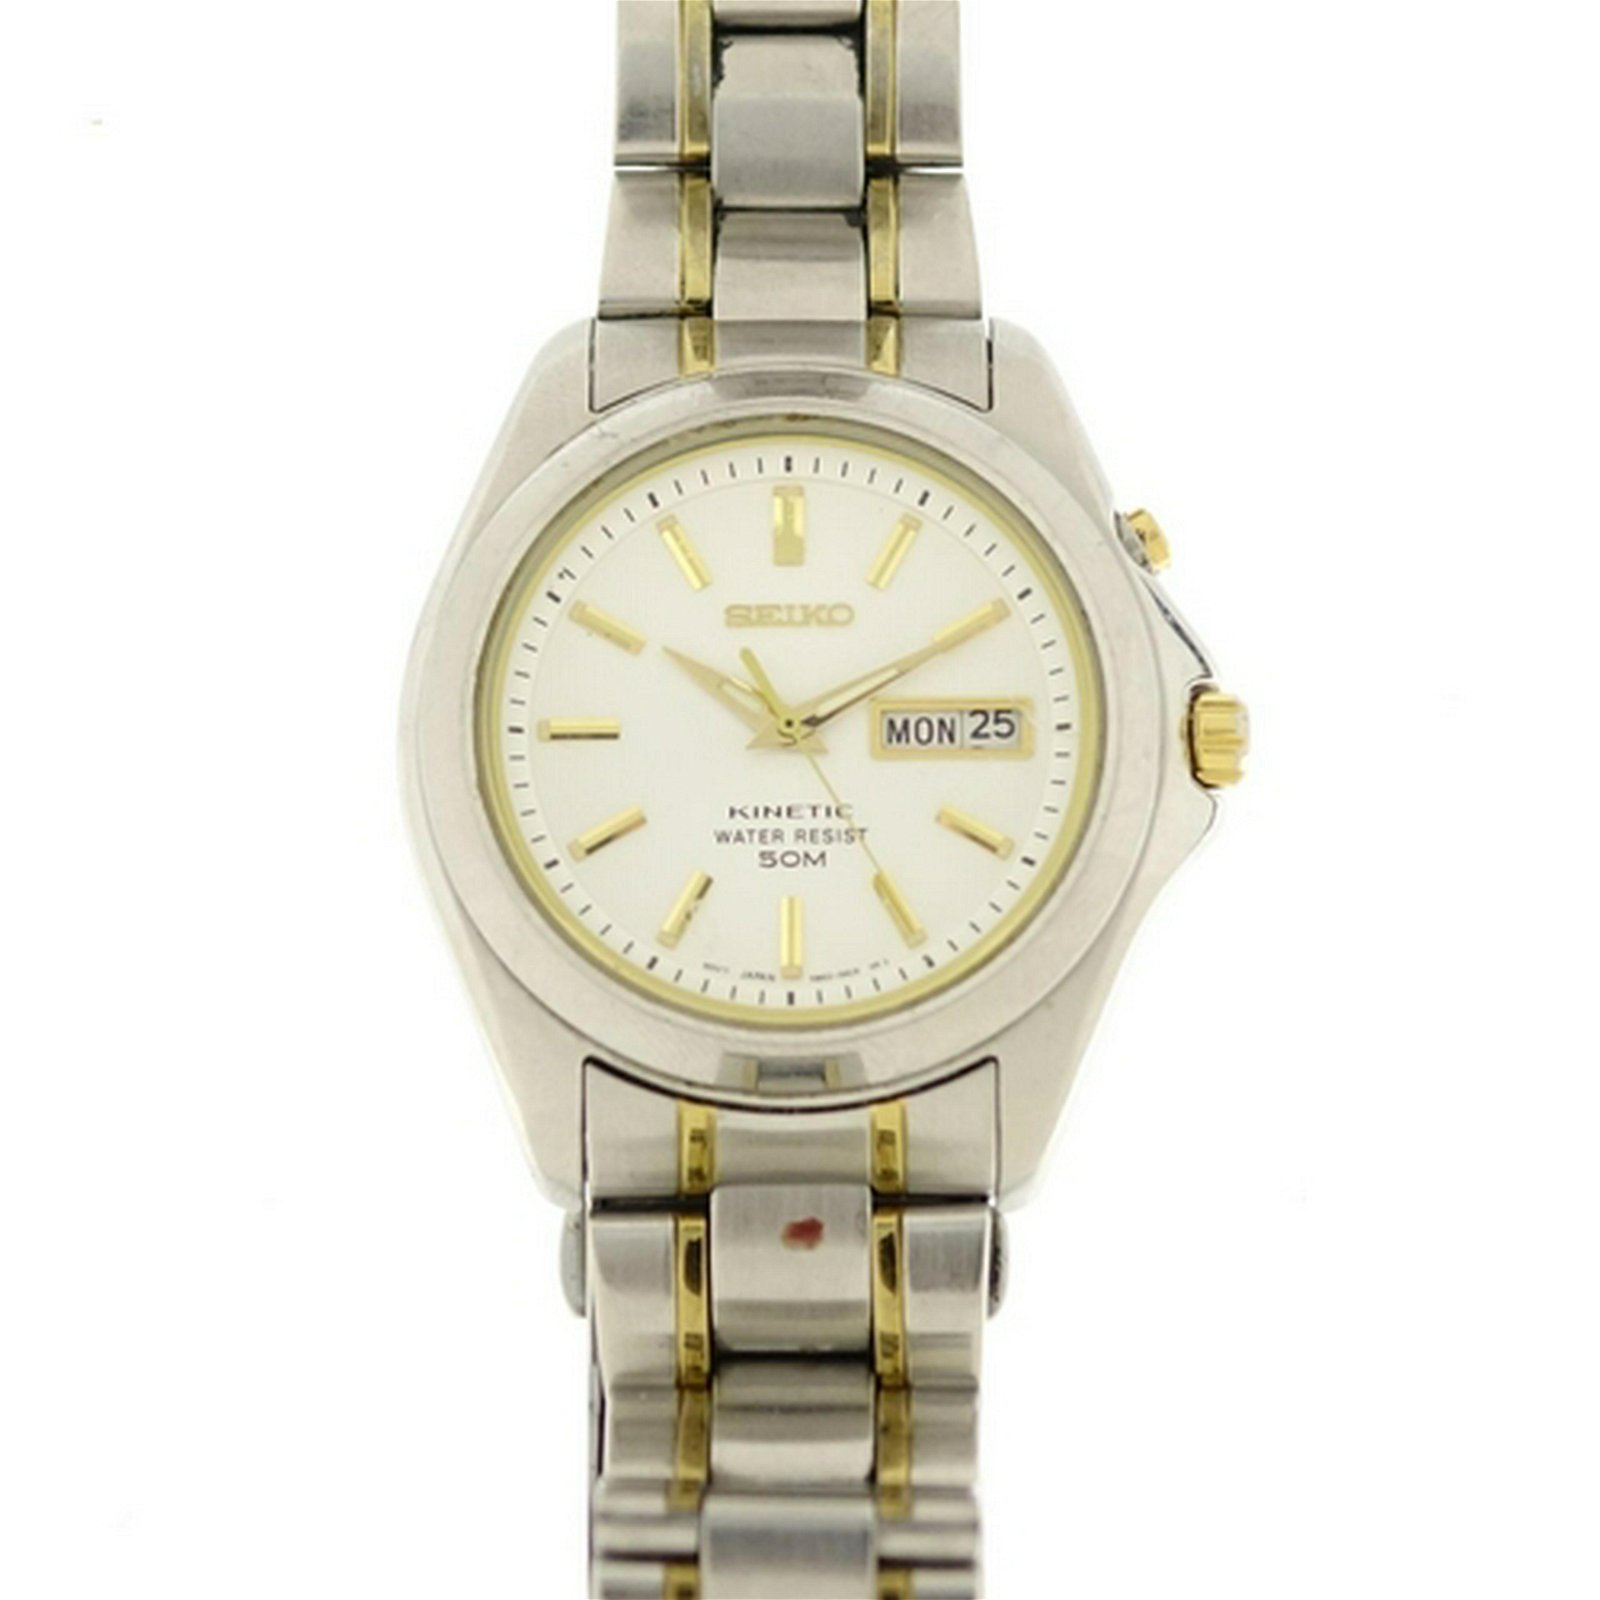 Gentleman's Seiko Kinetic wristwatch with day date